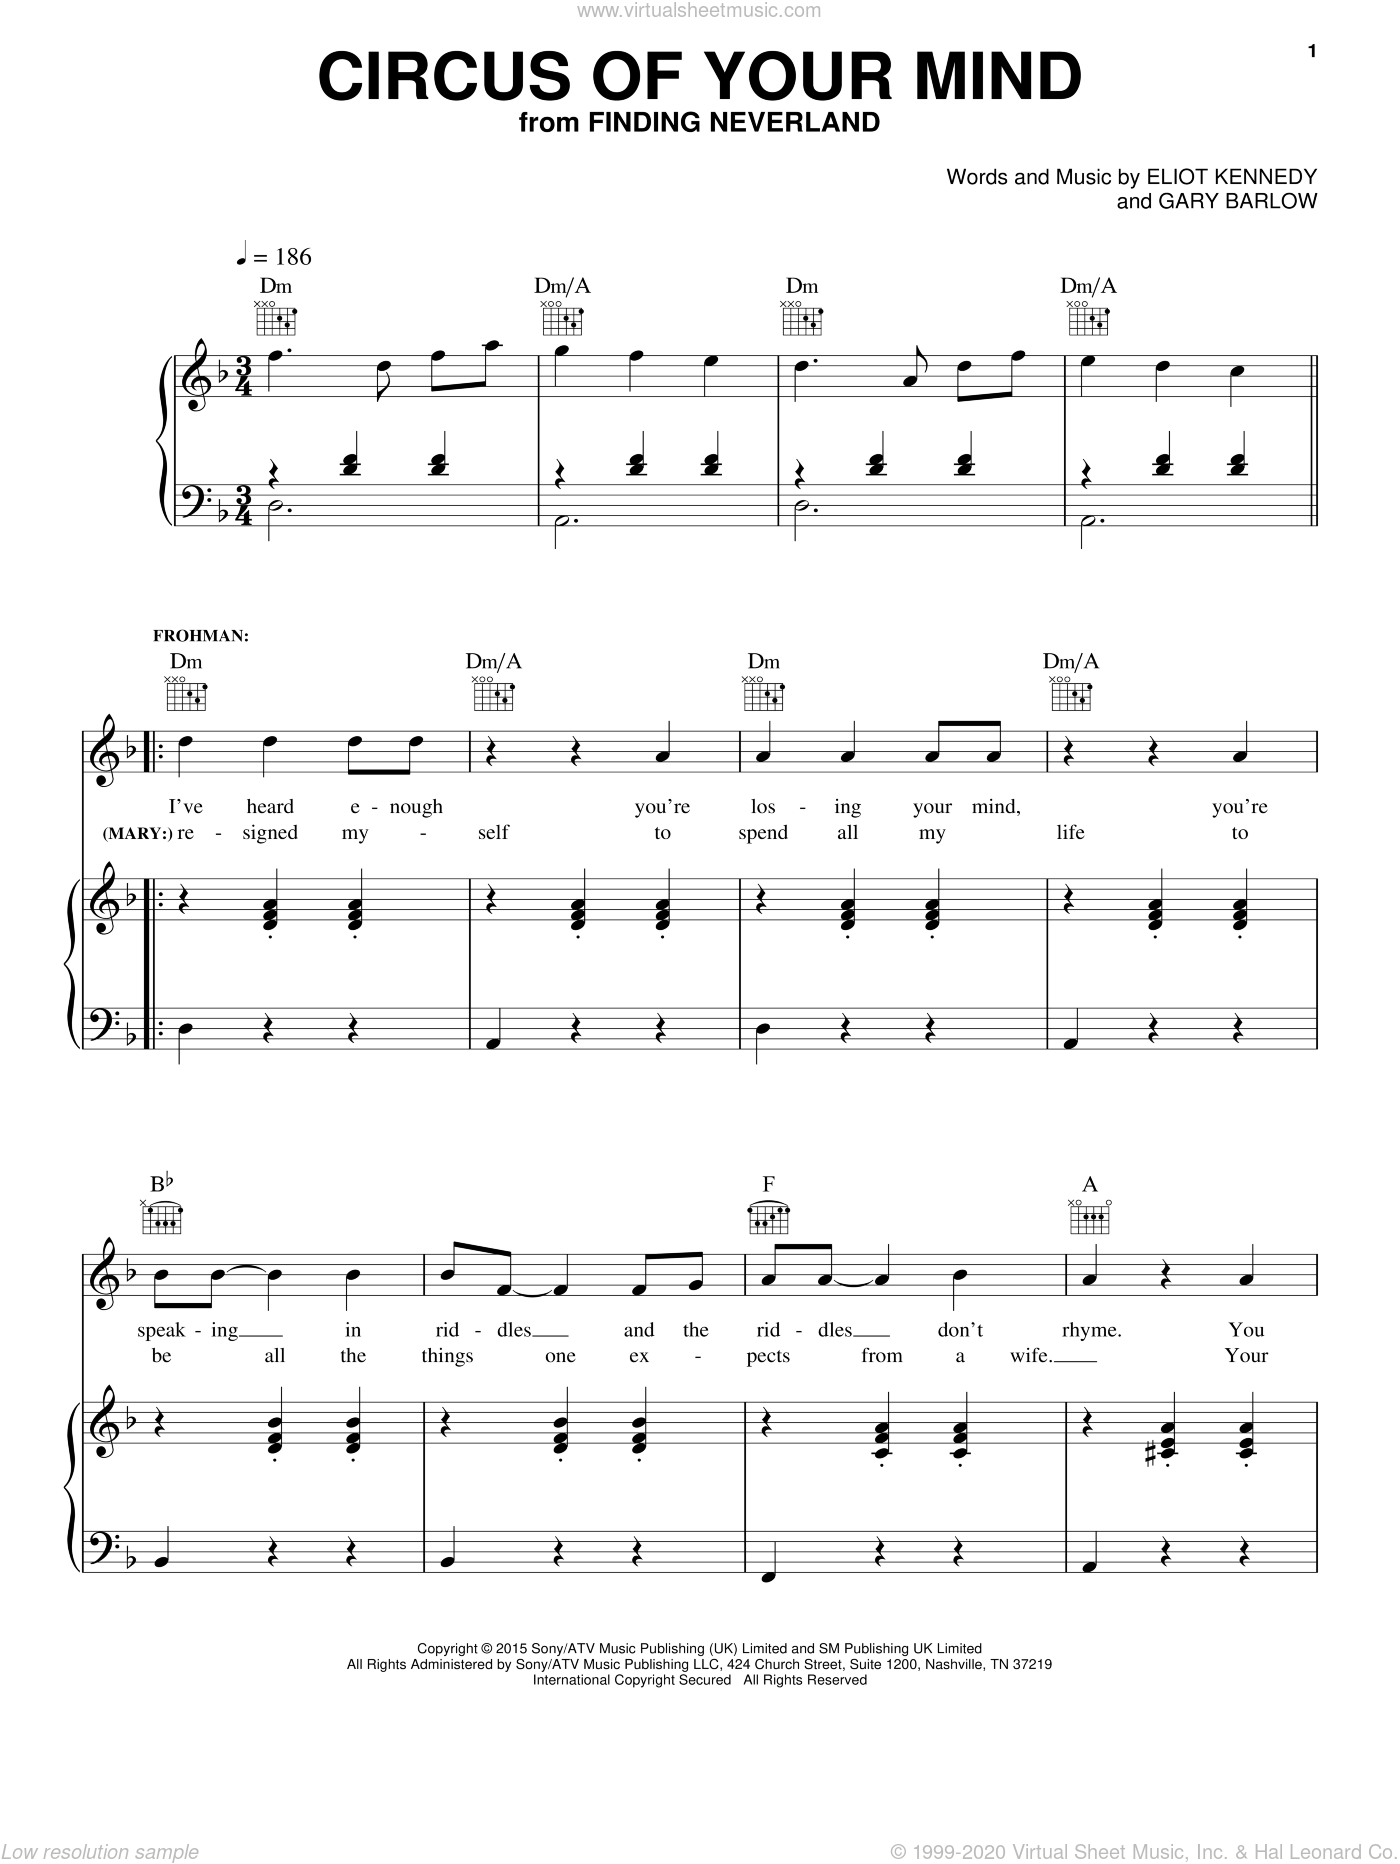 Circus Of Your Mind sheet music for voice, piano or guitar by Eliot Kennedy and Gary Barlow. Score Image Preview.